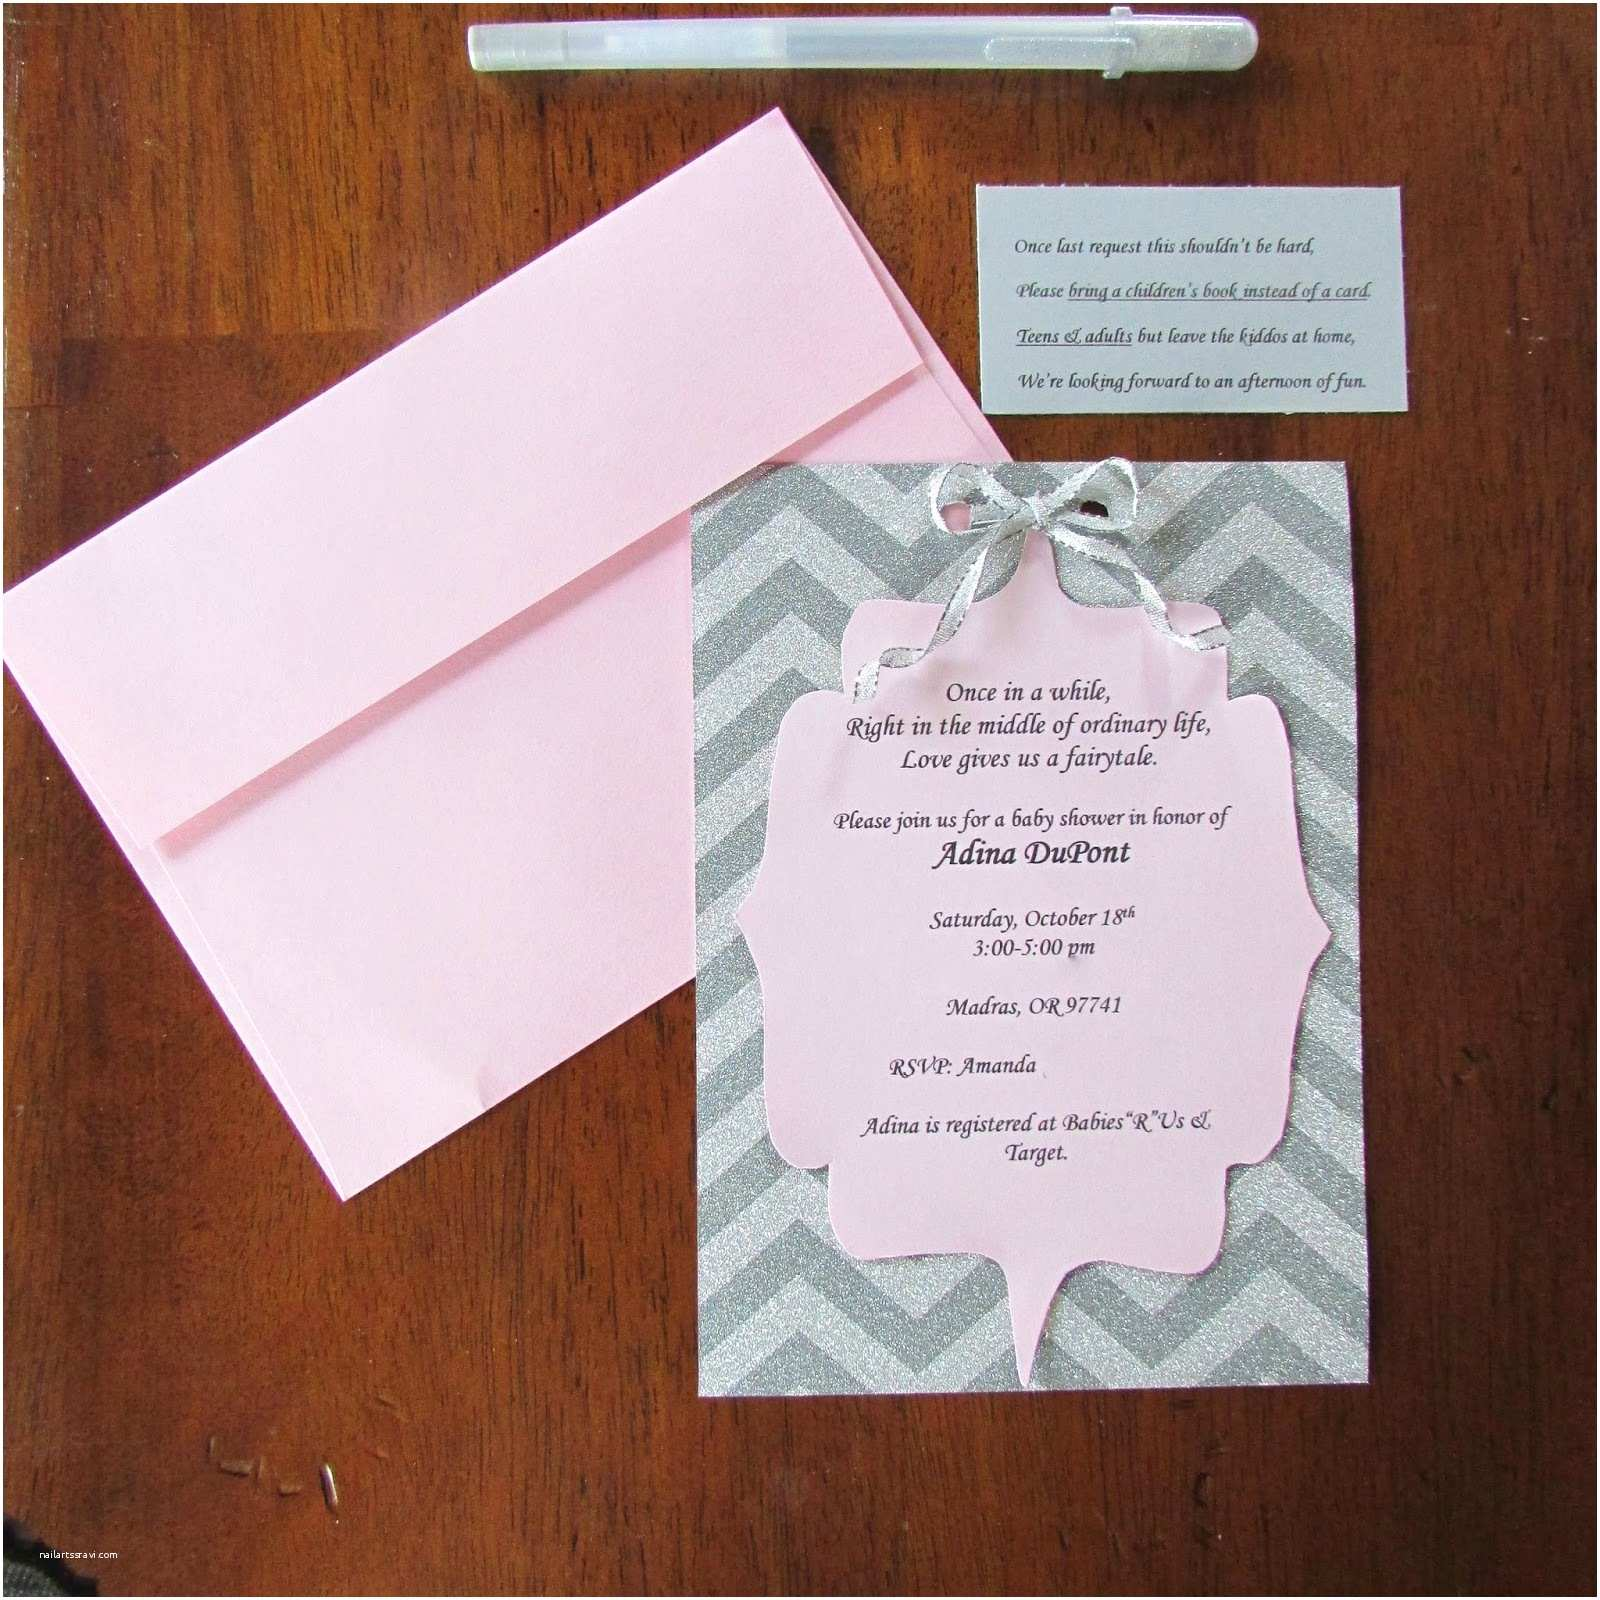 Diy Baby Shower Invitations Baby Shower Invitations New Diy Baby Shower Invitations